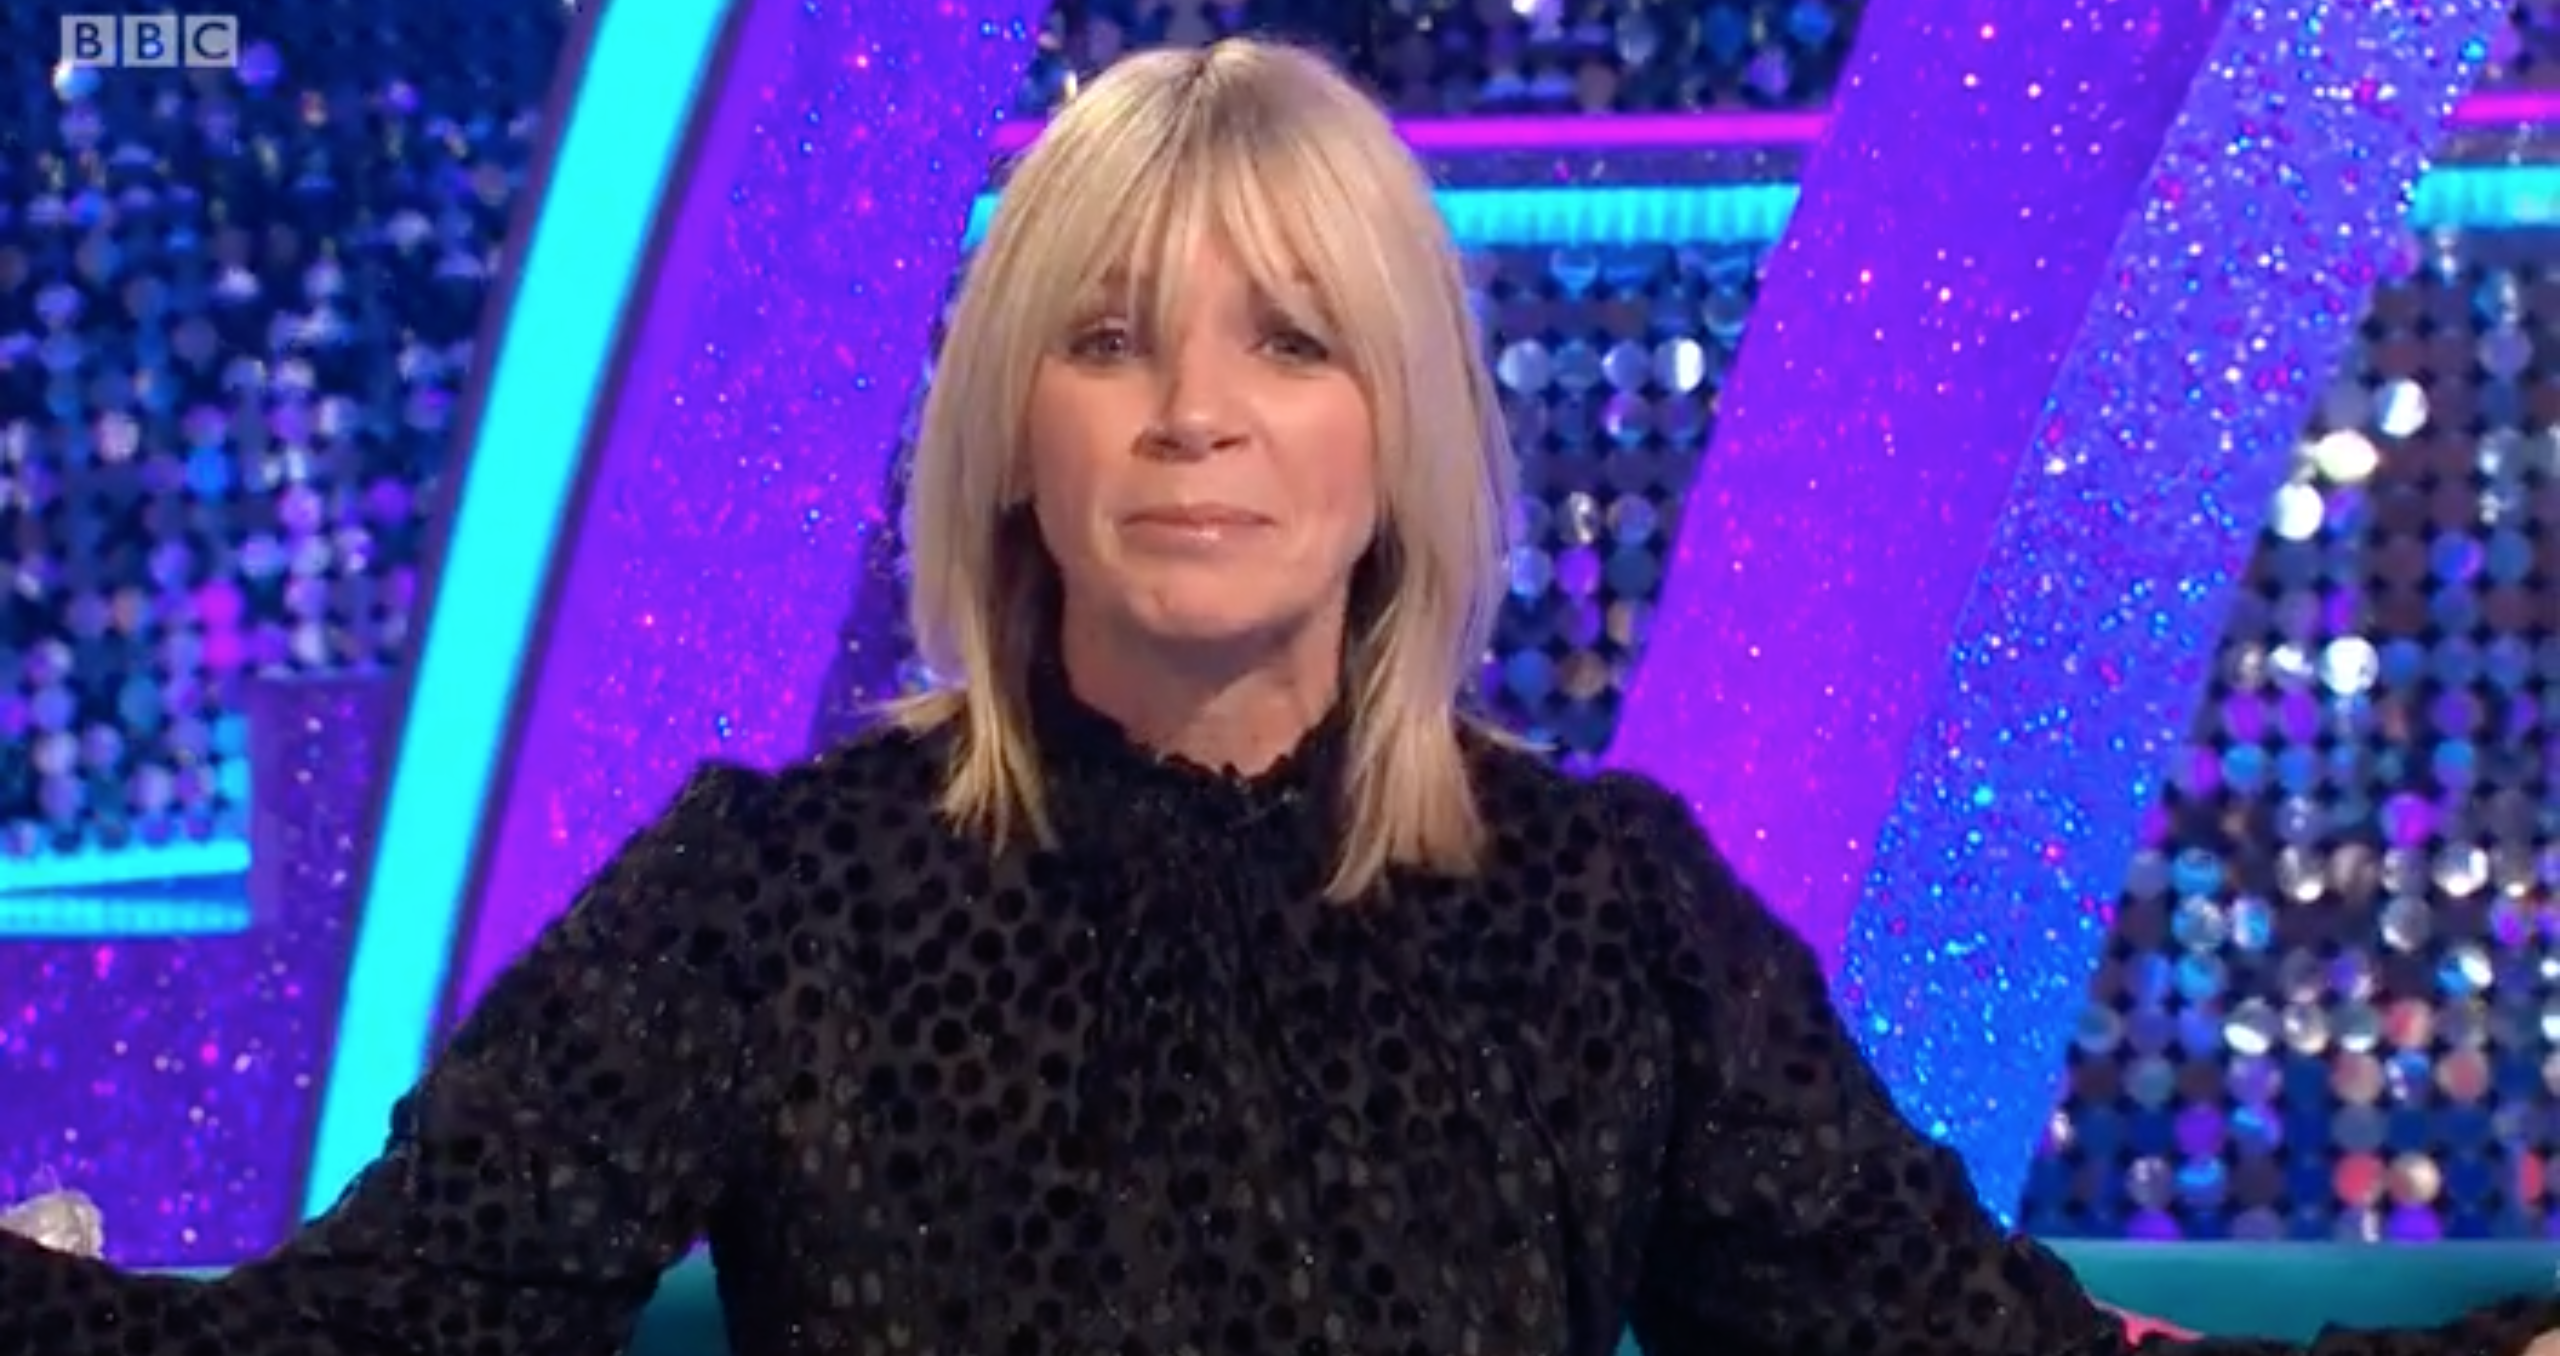 Strictly: Zoe Ball apologises as It Takes Two is forced off air due to technical issues